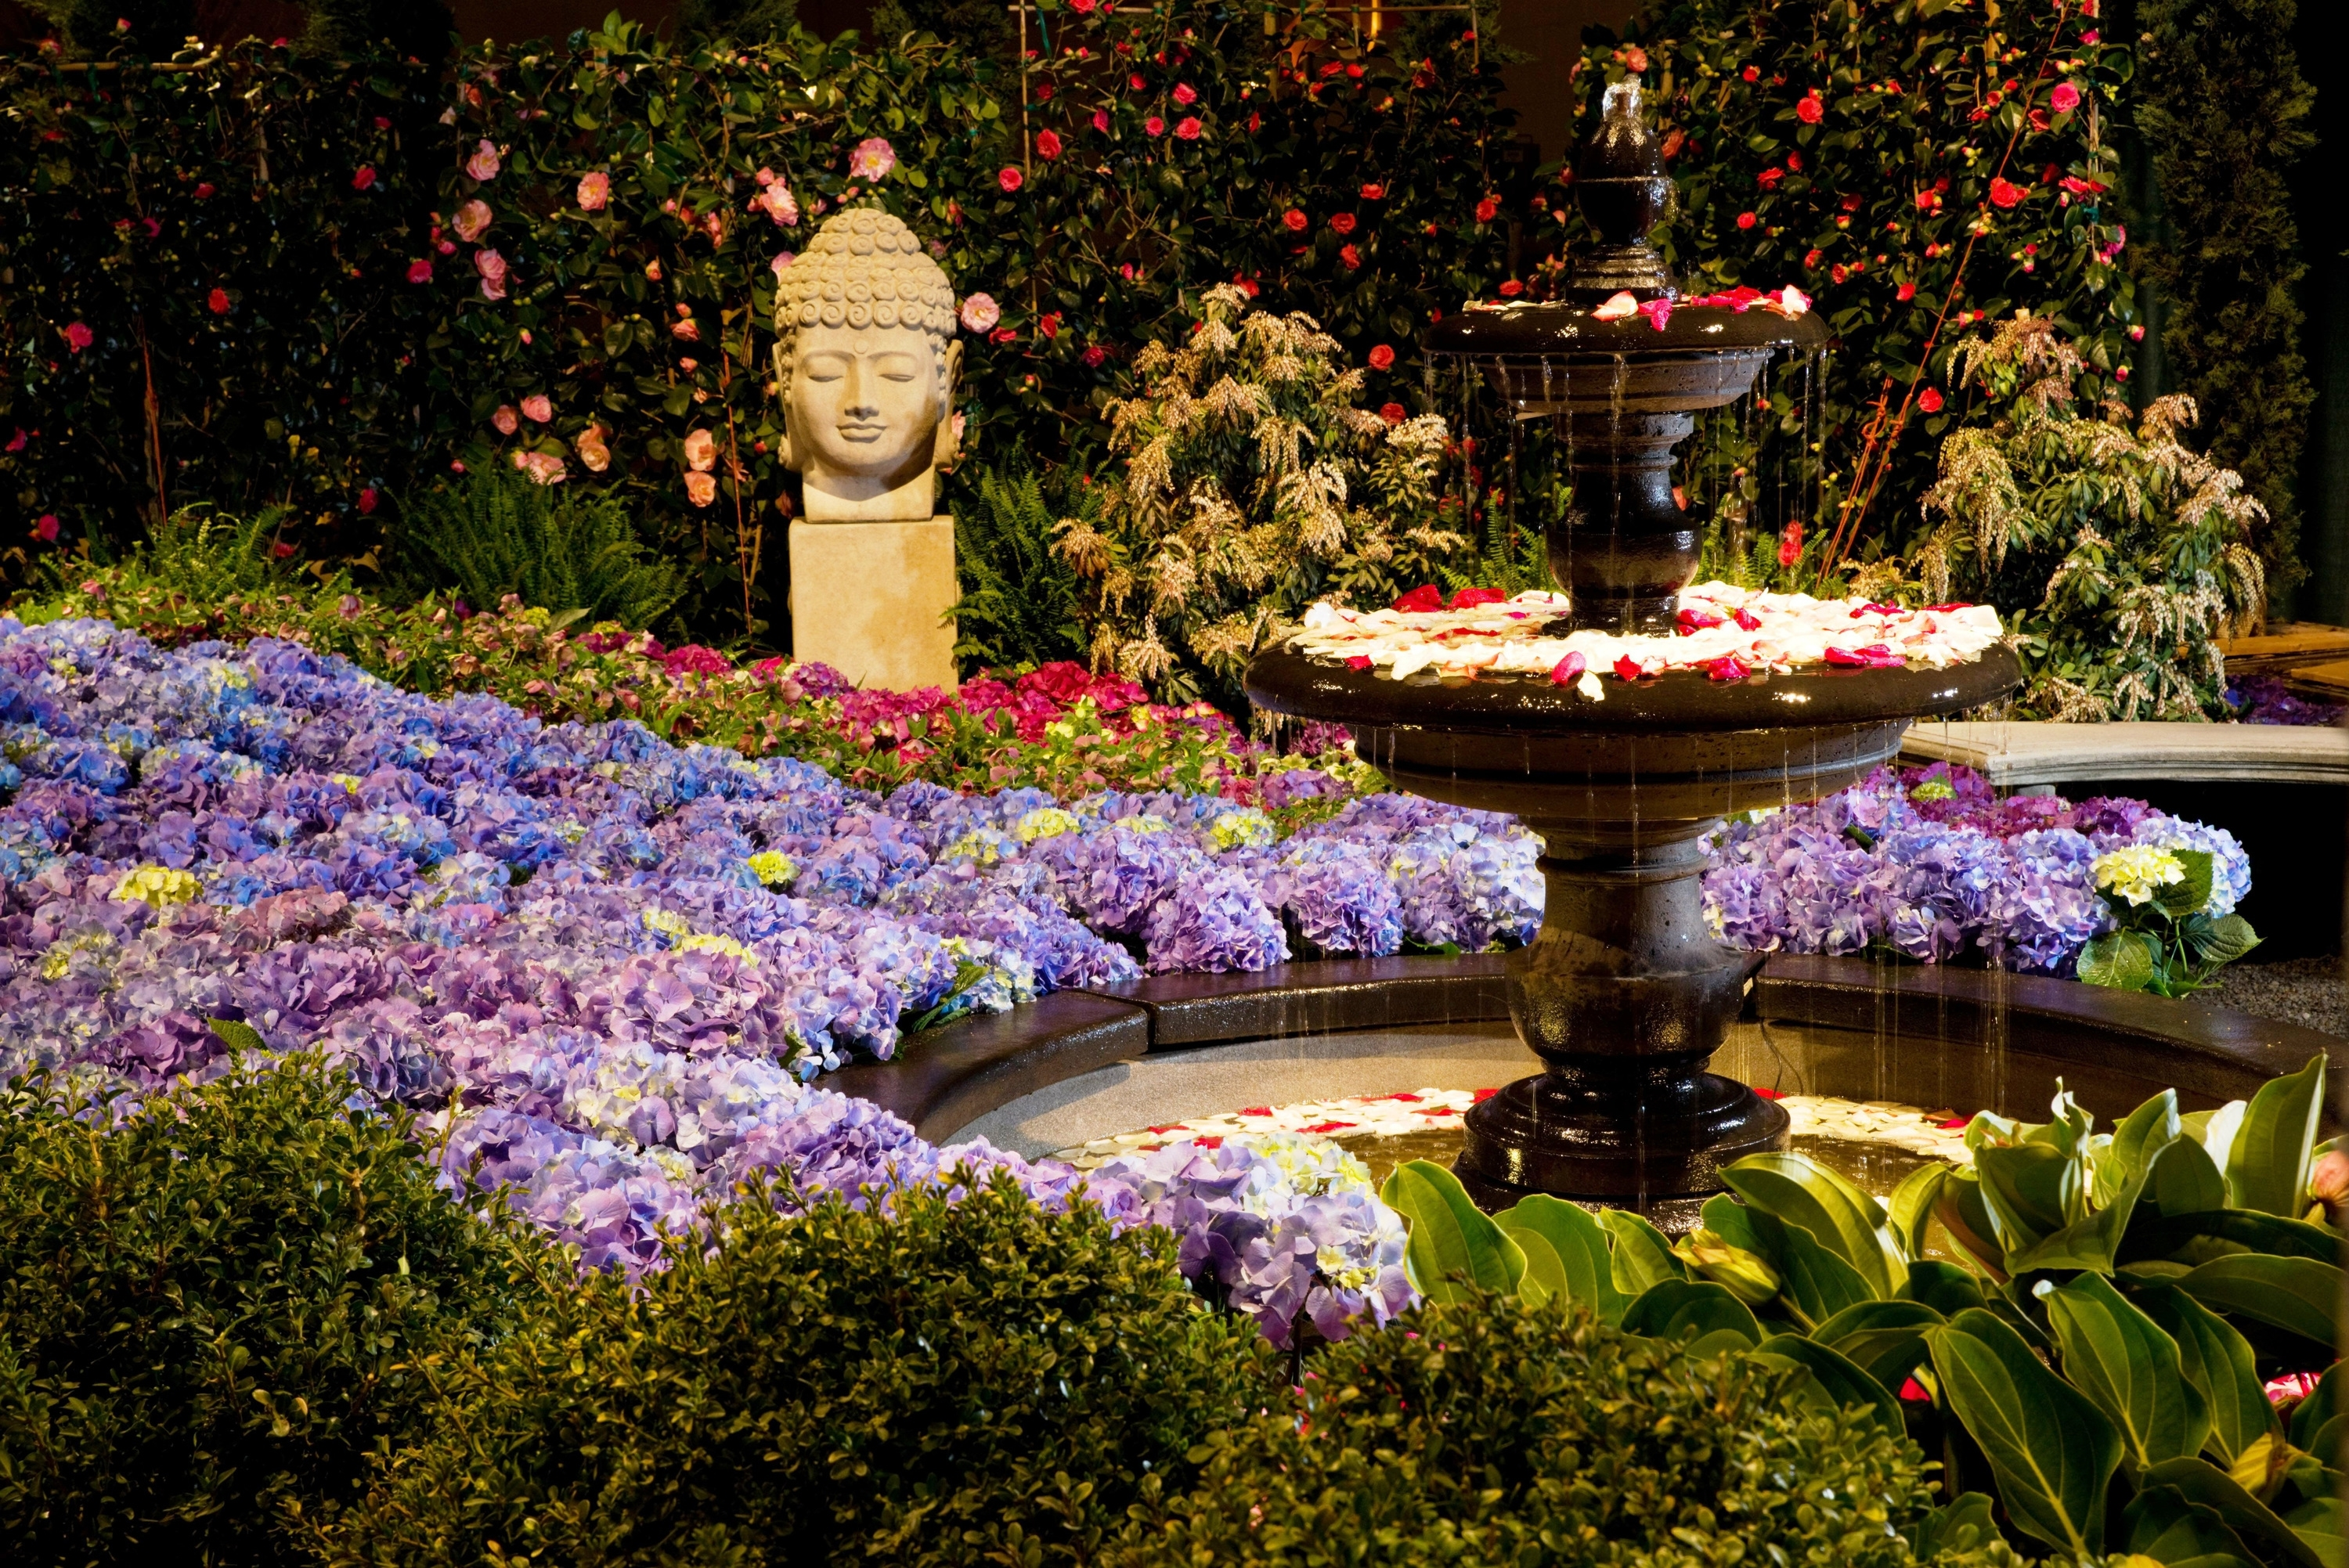 Chicago Flower & Garden Show | Things To Do In Chicago within Flower And Garden Festival Chicago